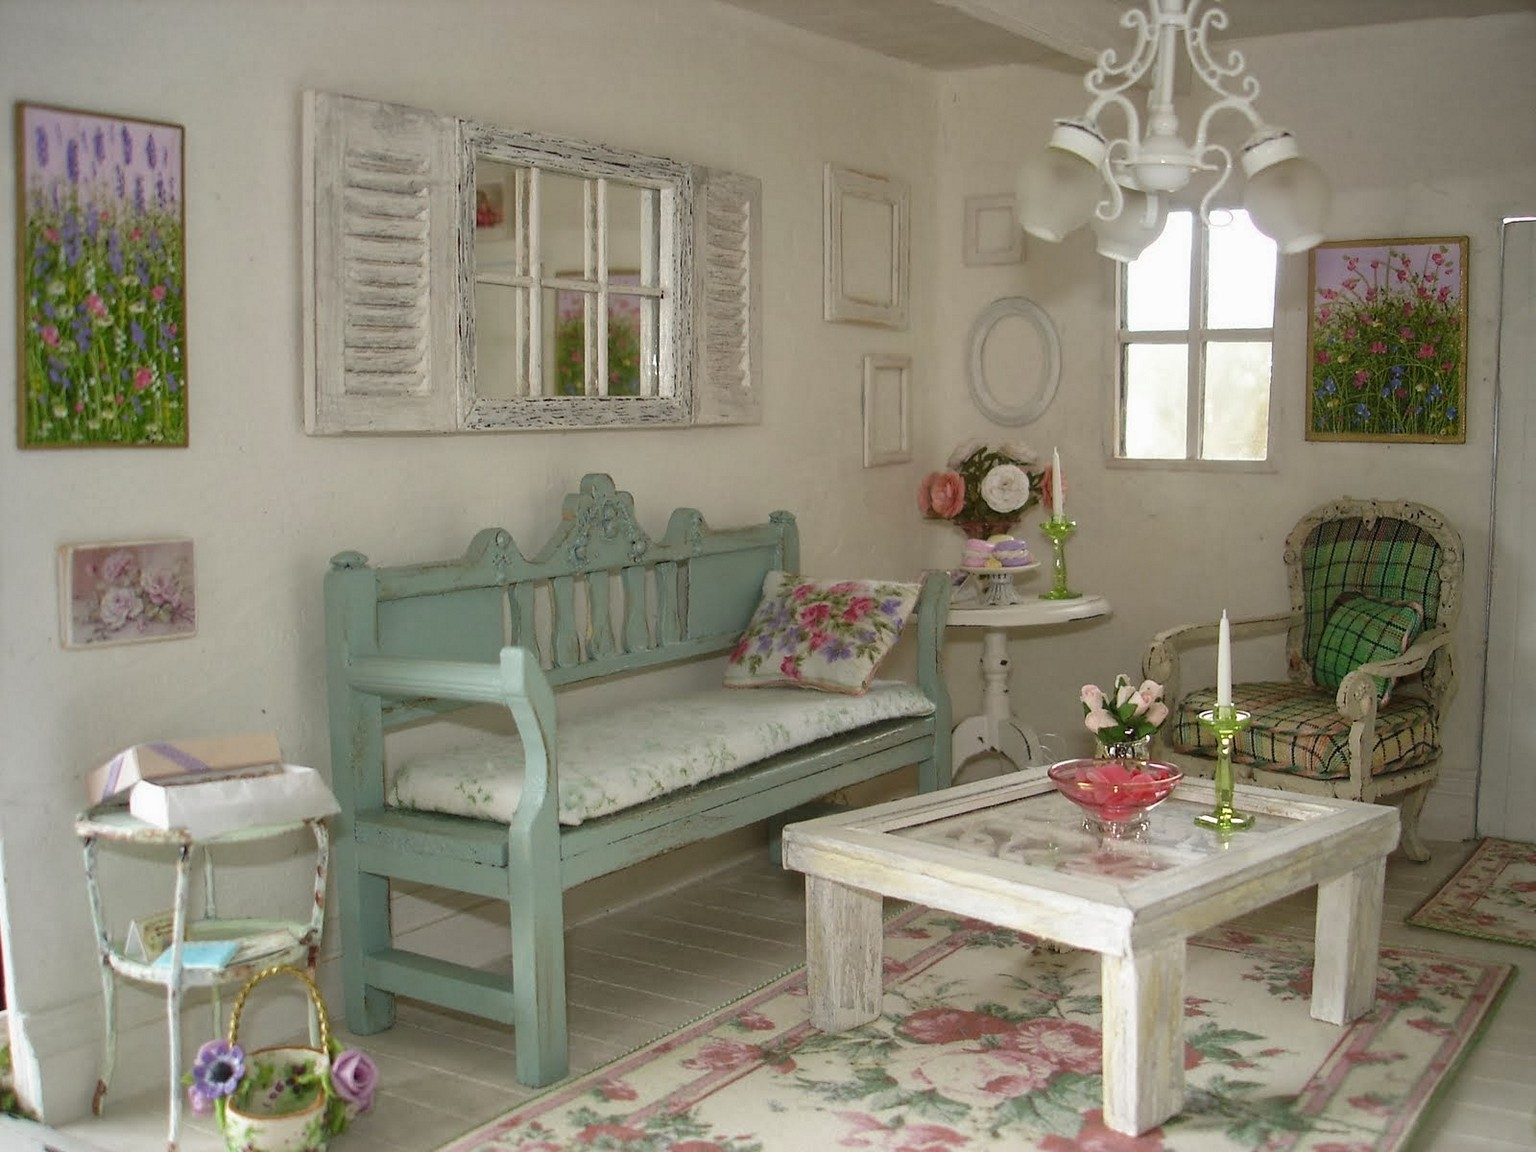 Salon shabby chic inspiré du porche.  Source: backtobasicliving.com